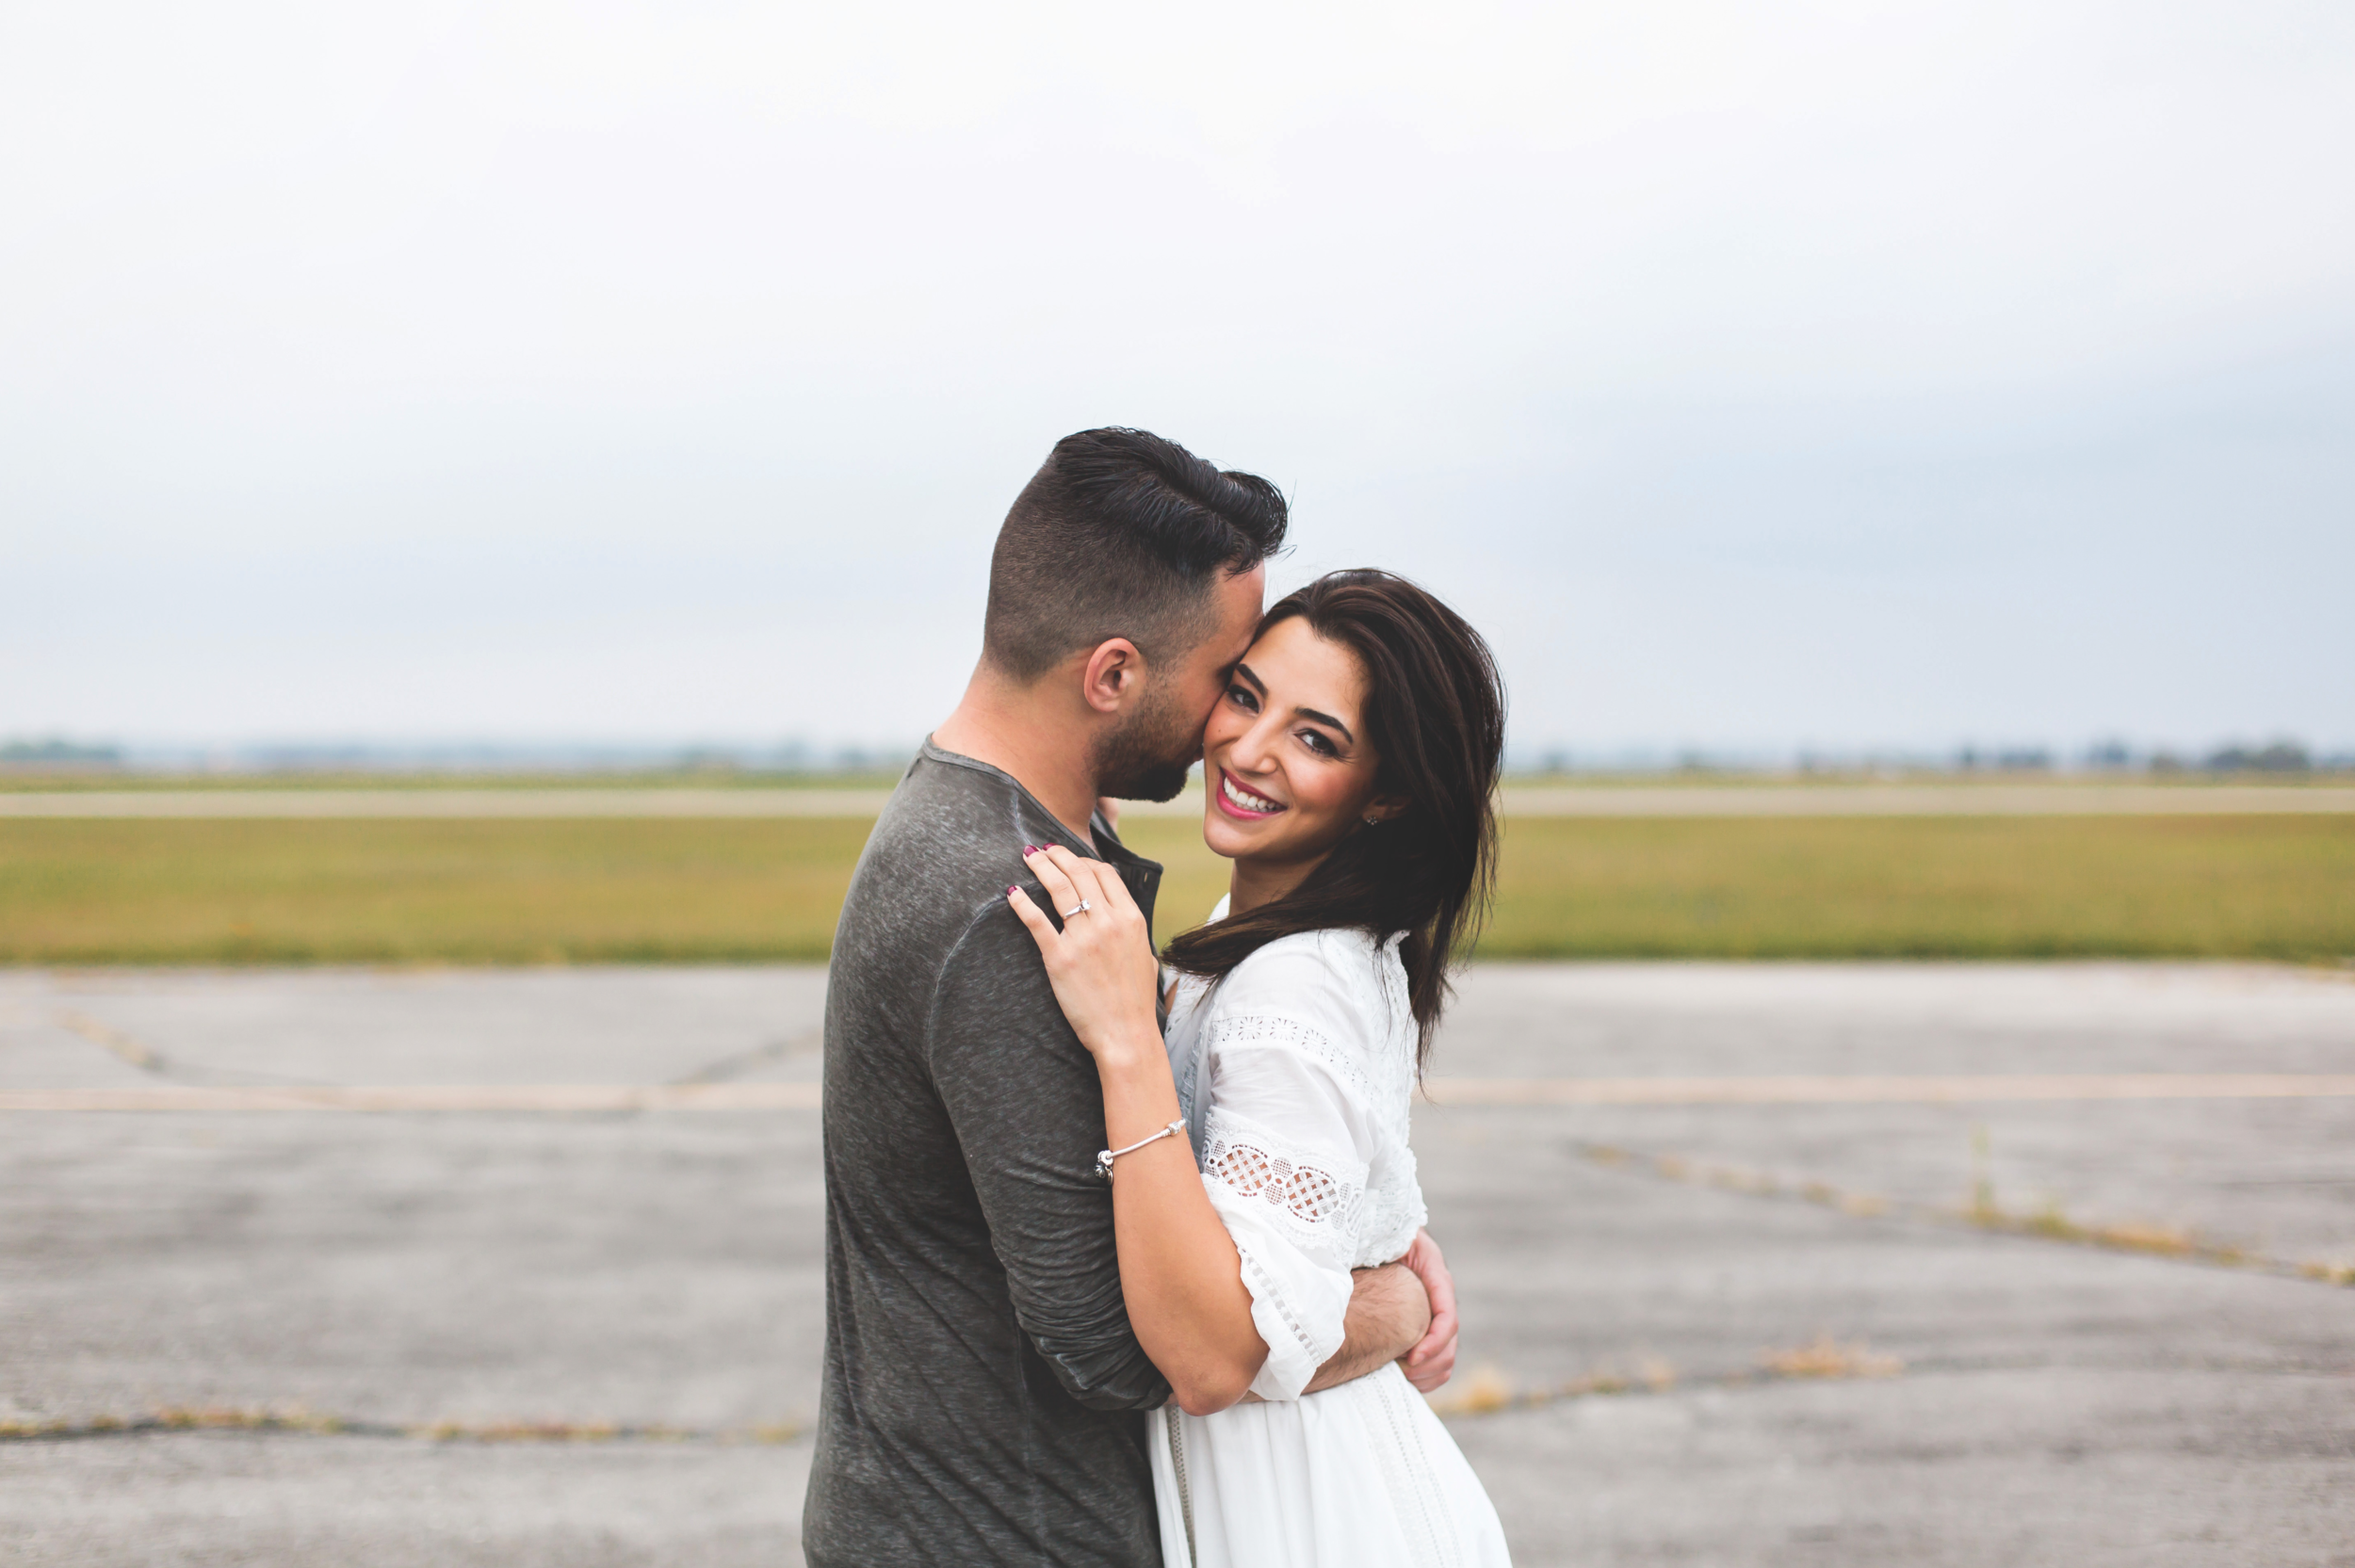 Engagement-Session-Hamilton-Burlington-Oakville-Toronto-Niagara-Wedding-Photographer-Engaged-Photography-Brantford-Airport-HamOnt-Engaged-Moments-by-Lauren-Photo-Image-34.png